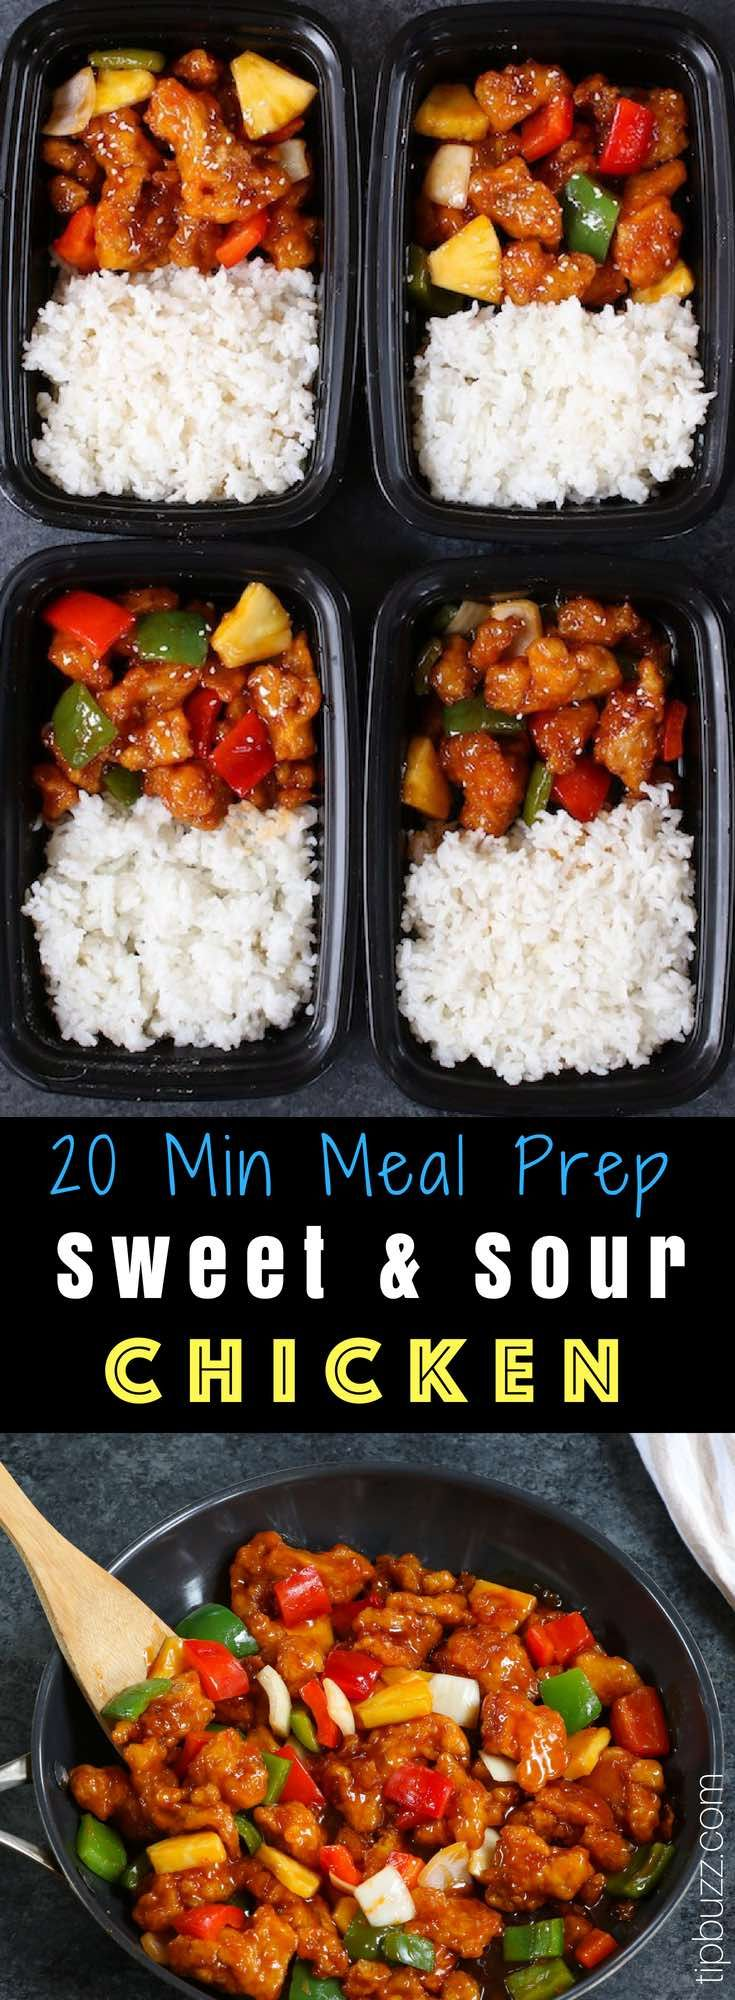 This Sweet and Sour Chicken is tender and crispy with bell peppers and pineapple in an irresistible sweet and sour sauce. It's ready in just 20 minutes and makes a quick weeknight dinner that's so much better than takeout from Chinese restaurants! #SweetAndSourChicken #MealPrep #ChickenMealPrep #bellpepperrecipes